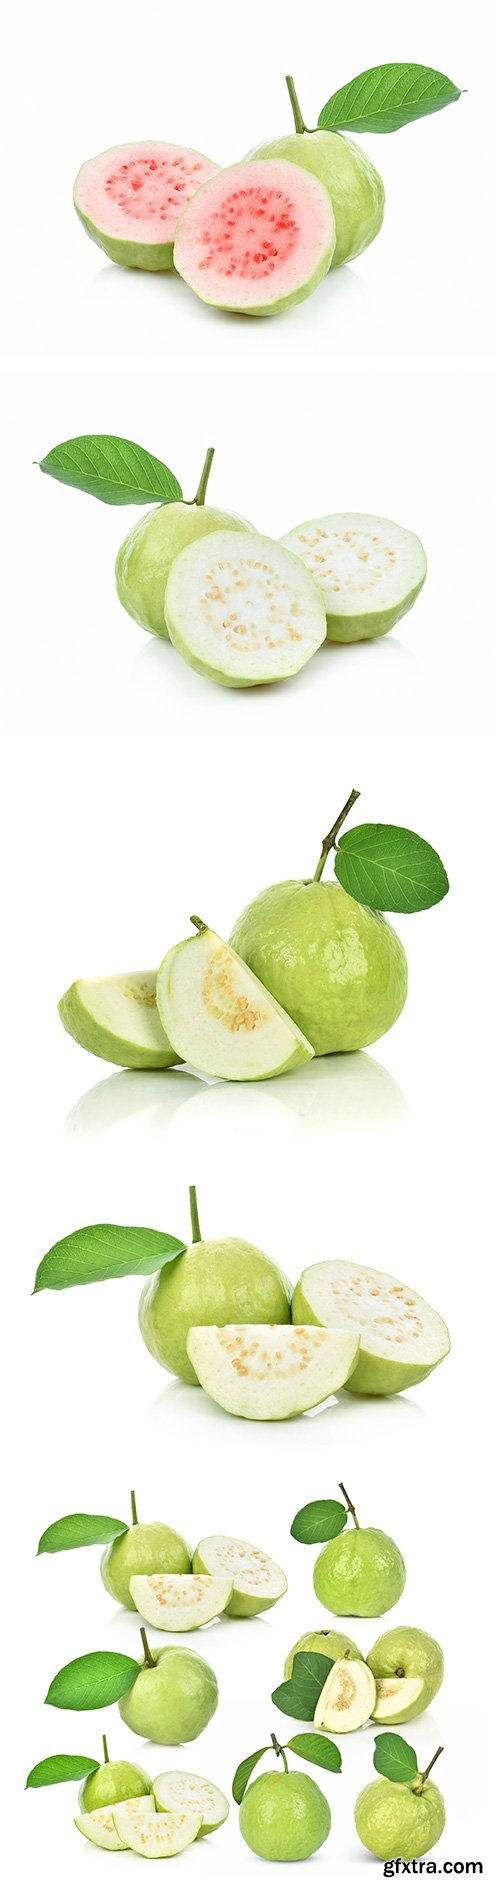 Guava Isolated - 8xJPGs